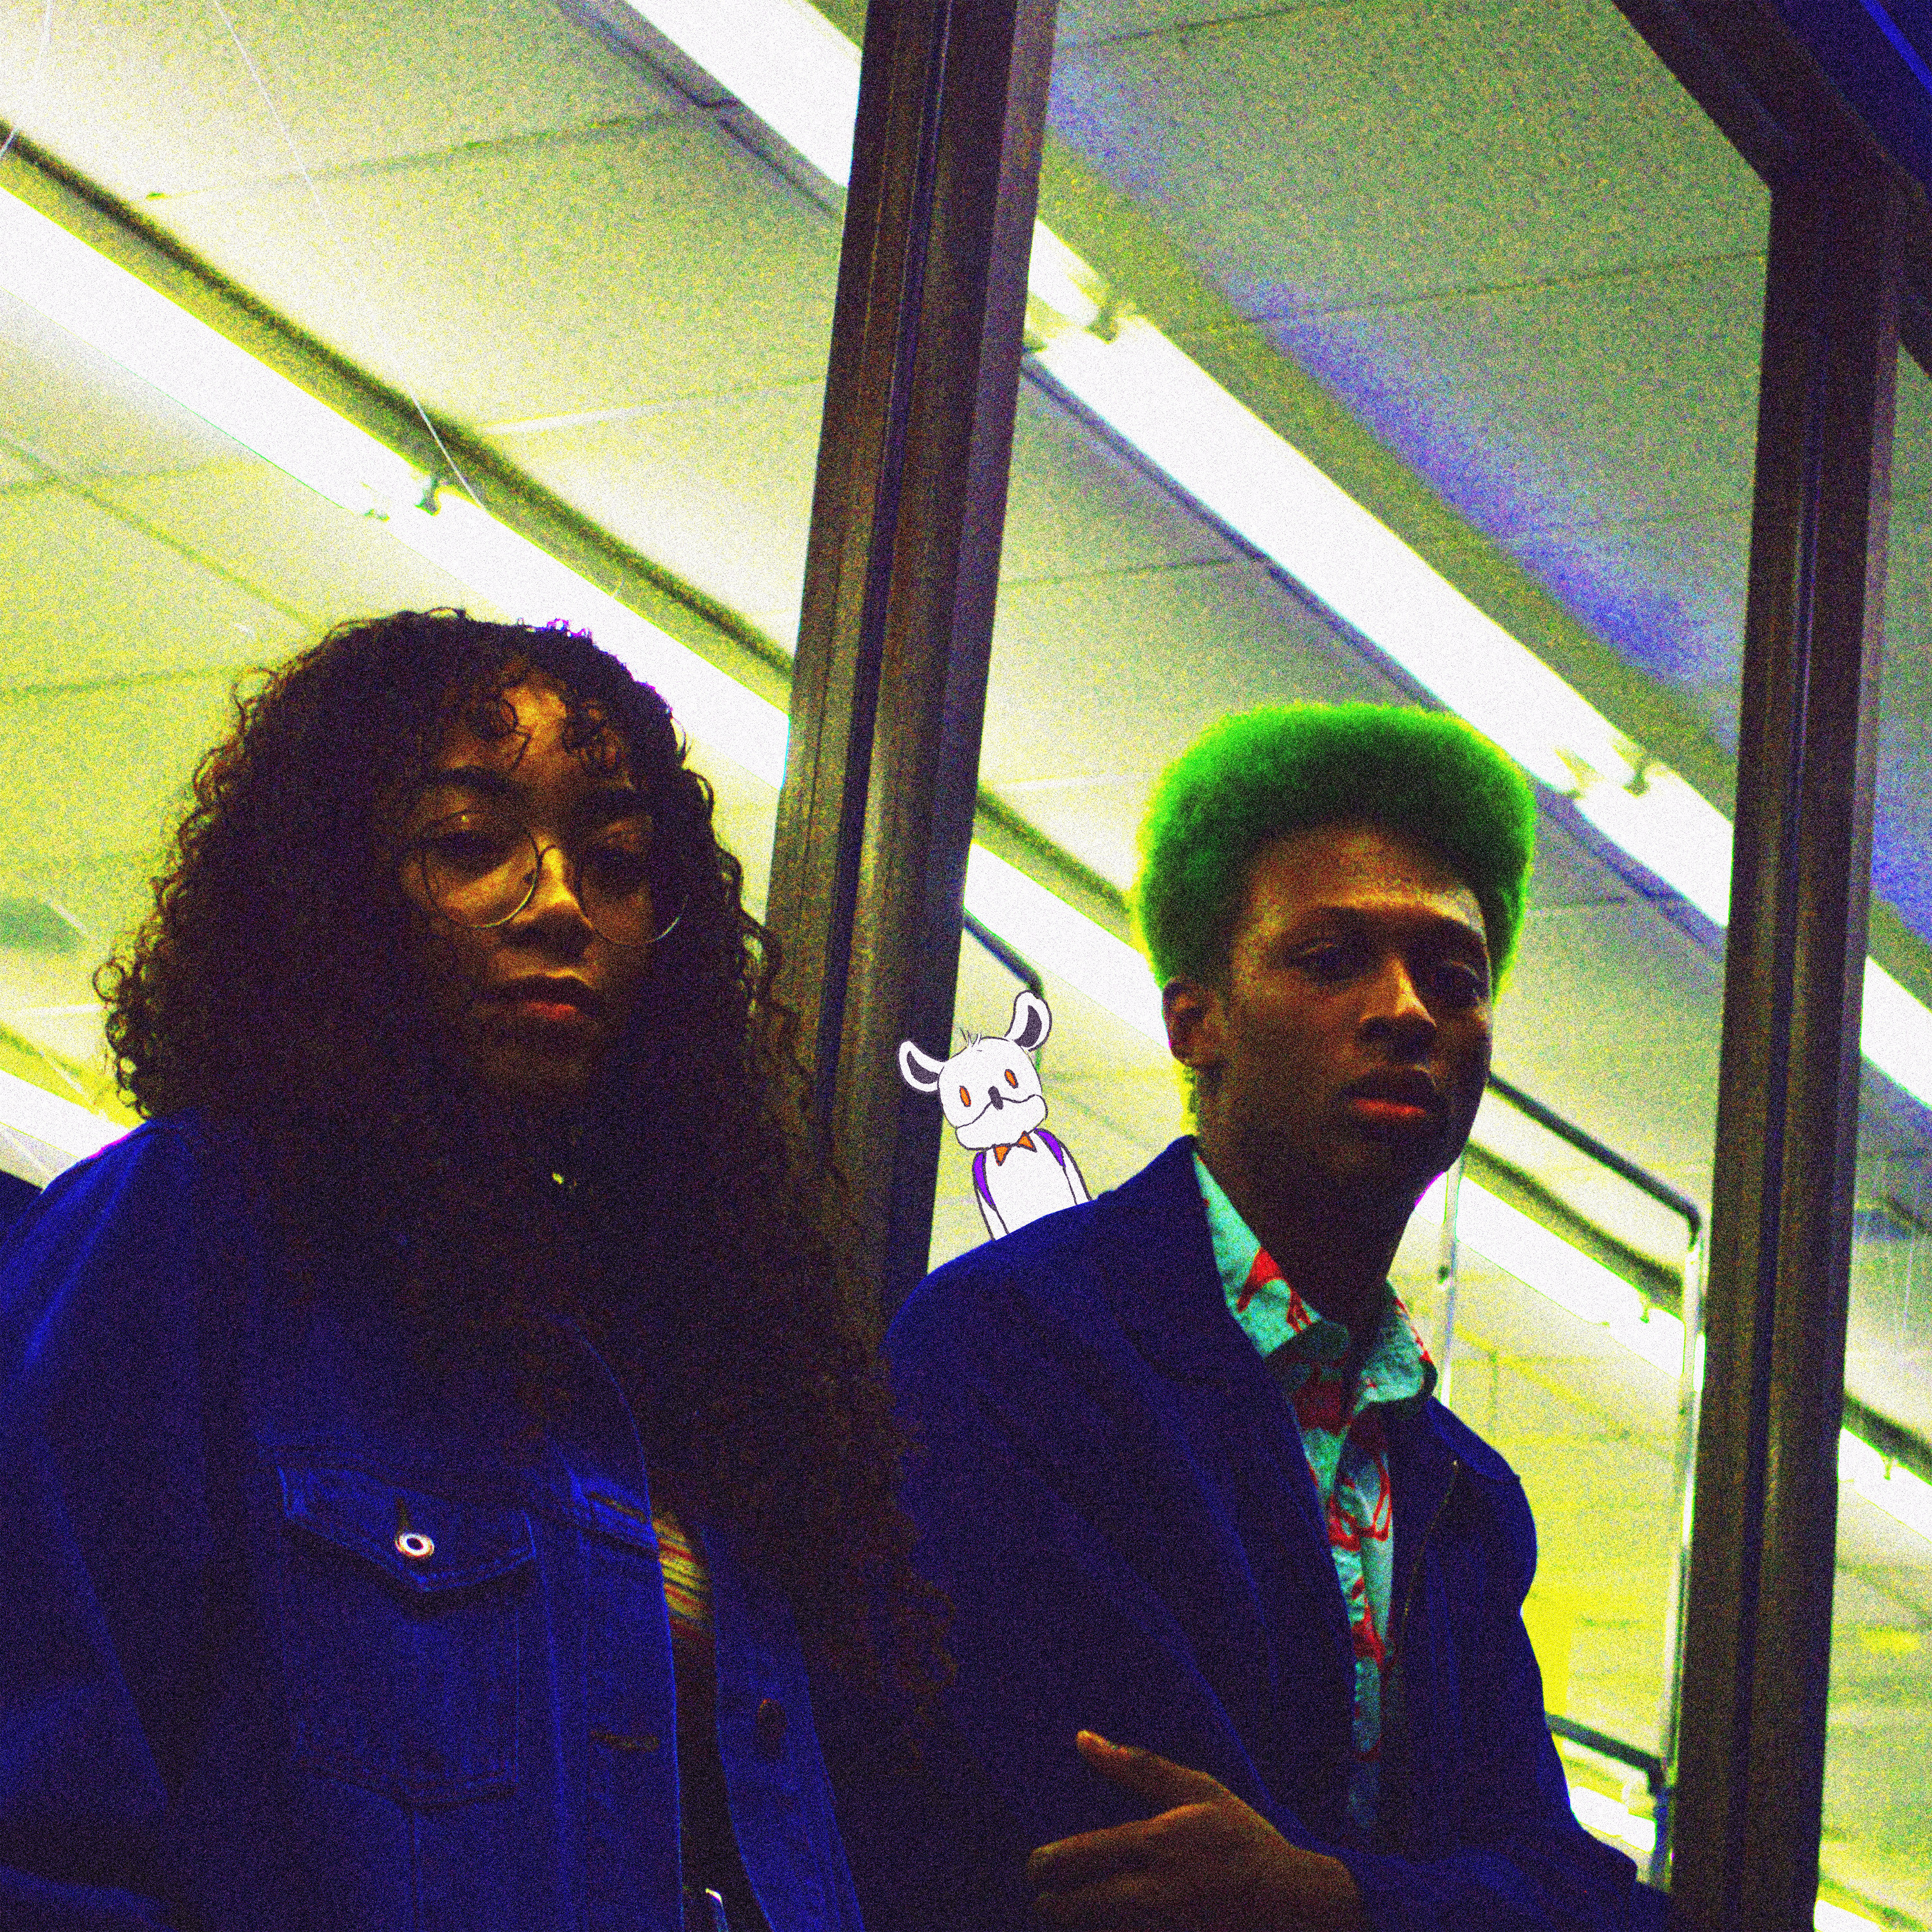 """Martin teams up with UMI on passionate, melancholic Valentine's Day single """"IDK"""""""